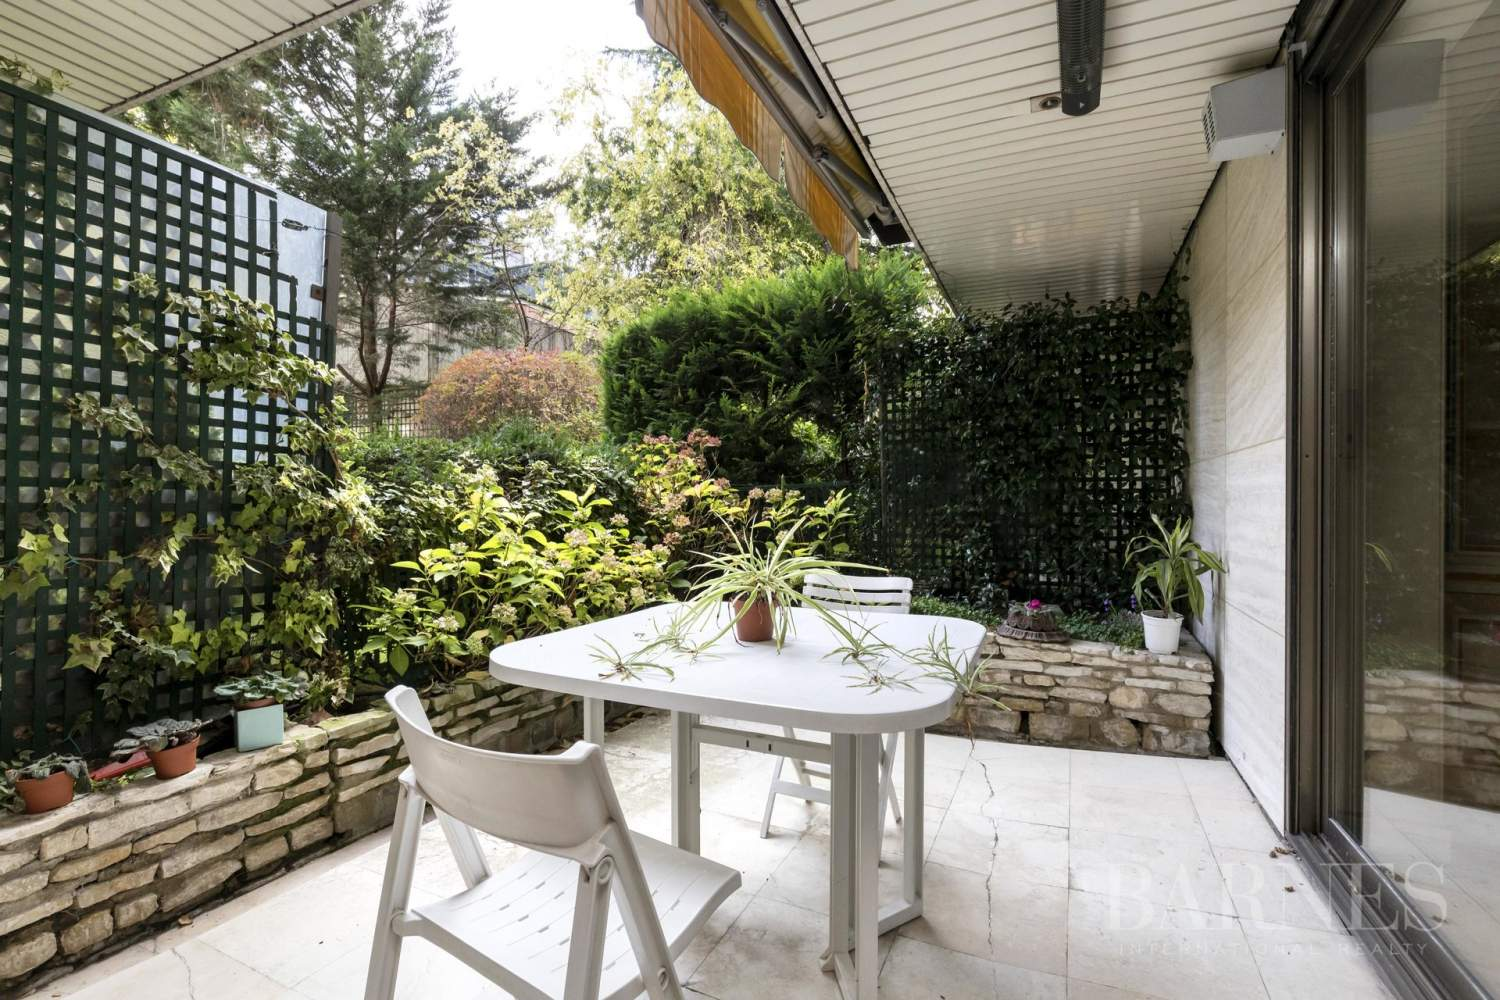 NEUILLY - CHATEAU - JARDIN et TERRASSE - 2/3 CHAMBRES - PARKING picture 4